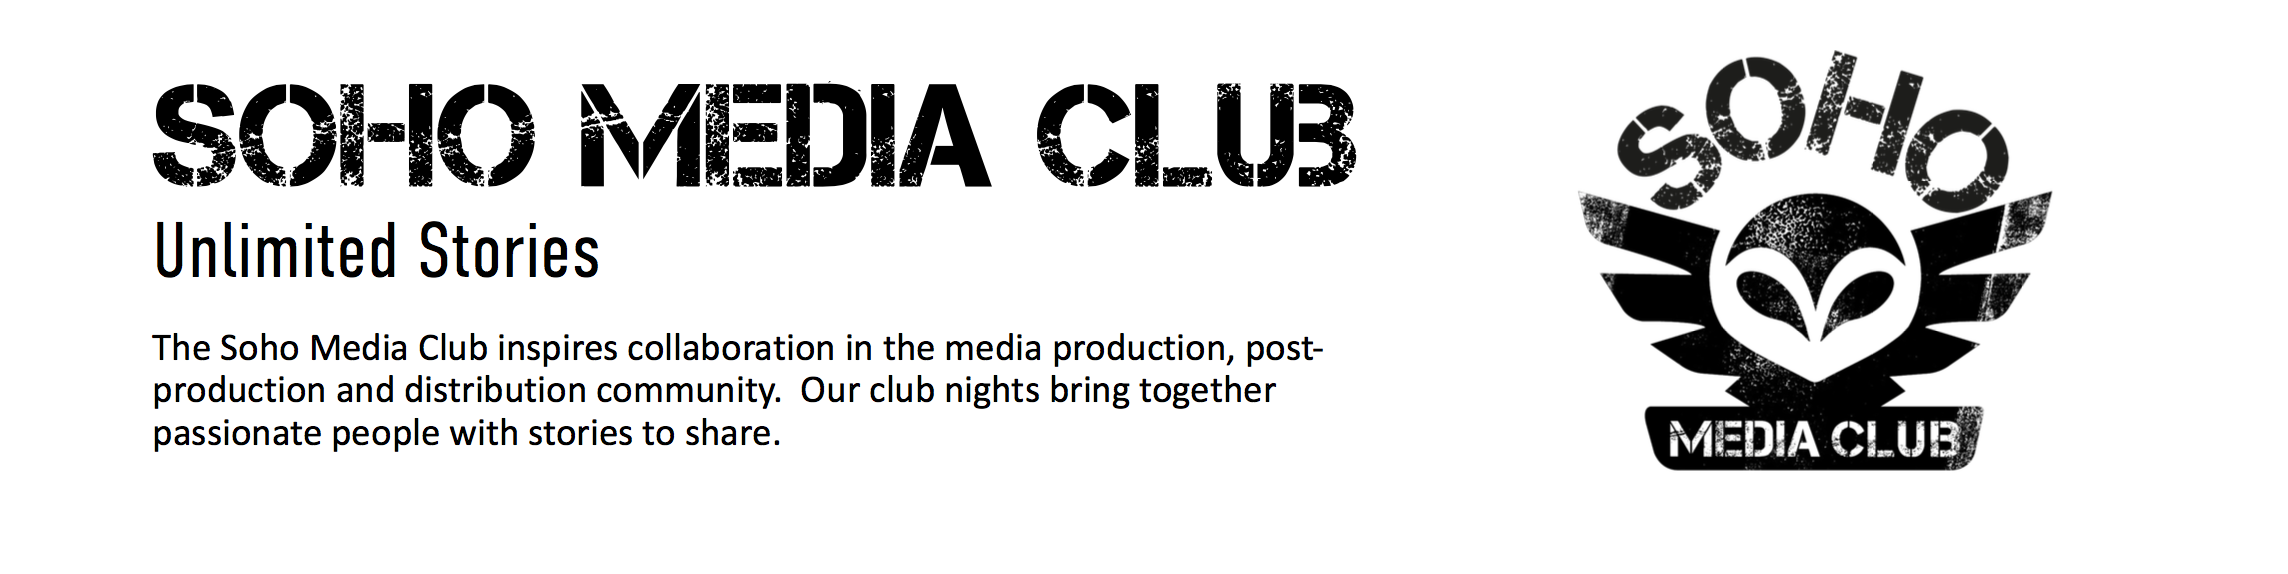 soho-media-club.png